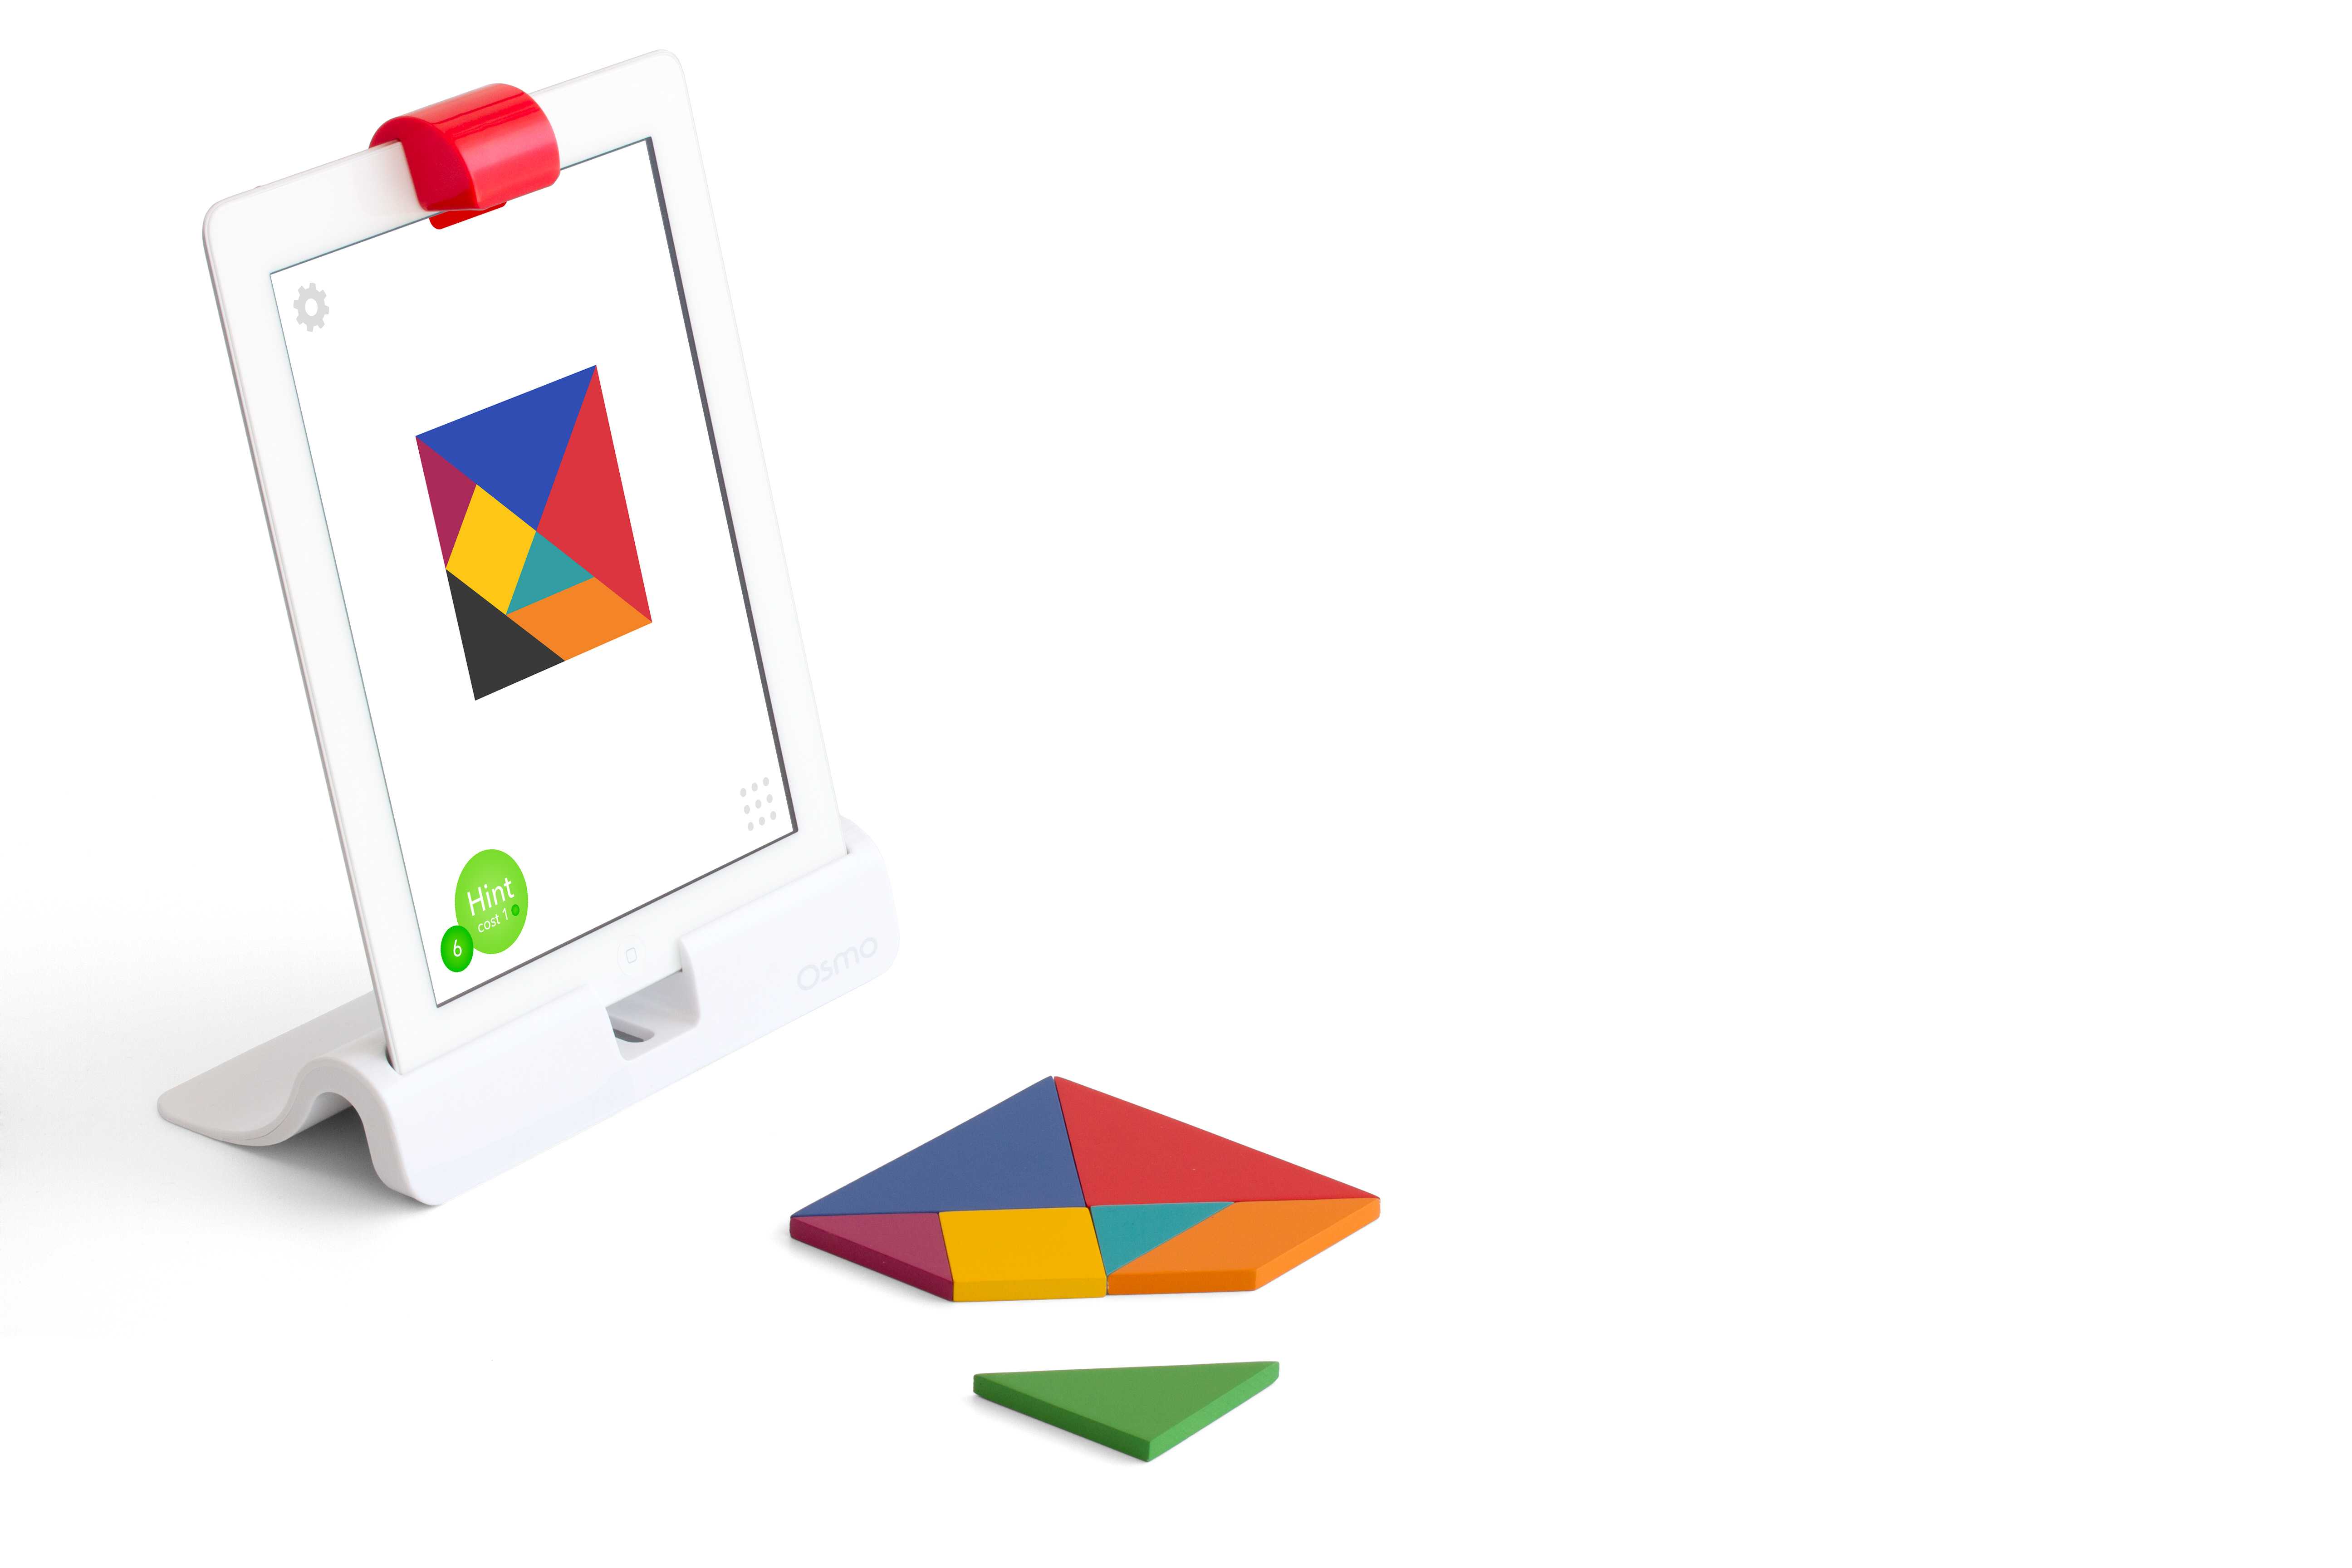 "<strong>Osmo Tangram</strong>                                                                      Tired of seeing your kids staring at screens like zombies? This iPad game brings virtual play to life. A reflector equipped with artificial intelligence snaps over your iPad's camera and can sense when objects are moving (or being drawn) on a pad in front of it. <a href=""https://www.playosmo.com/indexB.html?utm_expid=85506917-11.mIgqowhiR_y8Ms-6ToImHQ.1&amp;utm_referrer=https%3A%2F%2Fwww.google.com%2F"">Osmo</a> comes with three games, all of which promote creativity and—because it's best played in groups—social intelligence. The best way to understand how Osmo works is by watching the <a href=""https://www.youtube.com/watch?v=CbwIJMz9PAQ"">video</a> of kids who have never played with the device before testing it out for the first time."